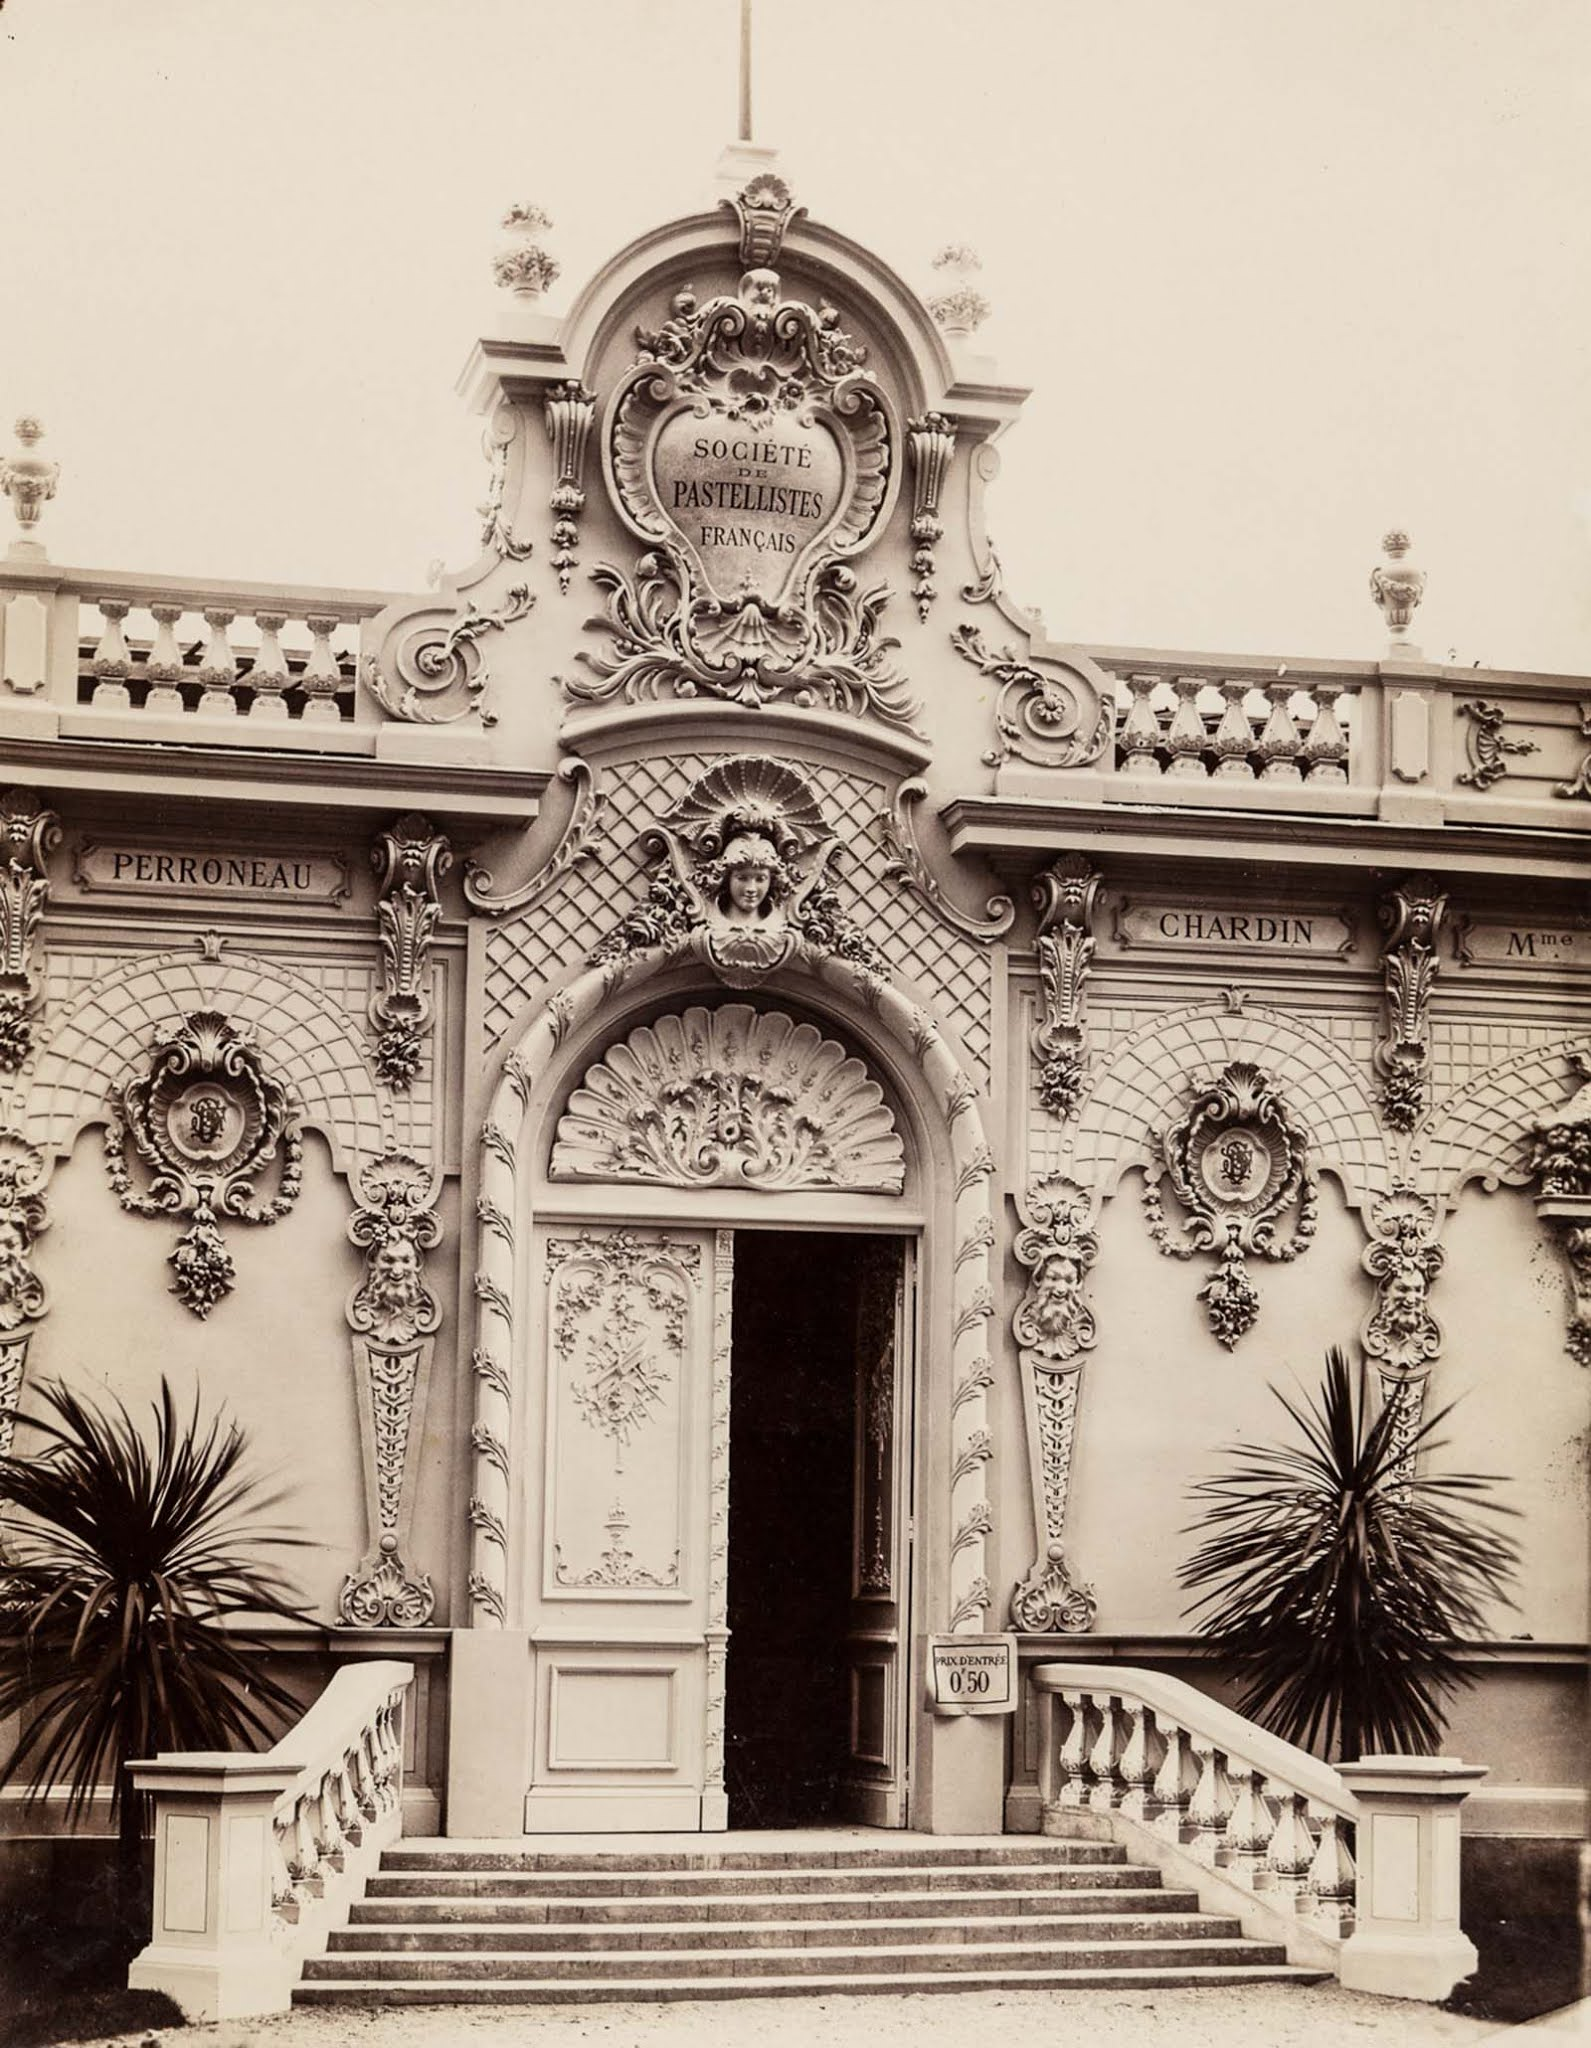 The entrance to an exhibition of French pastellists.